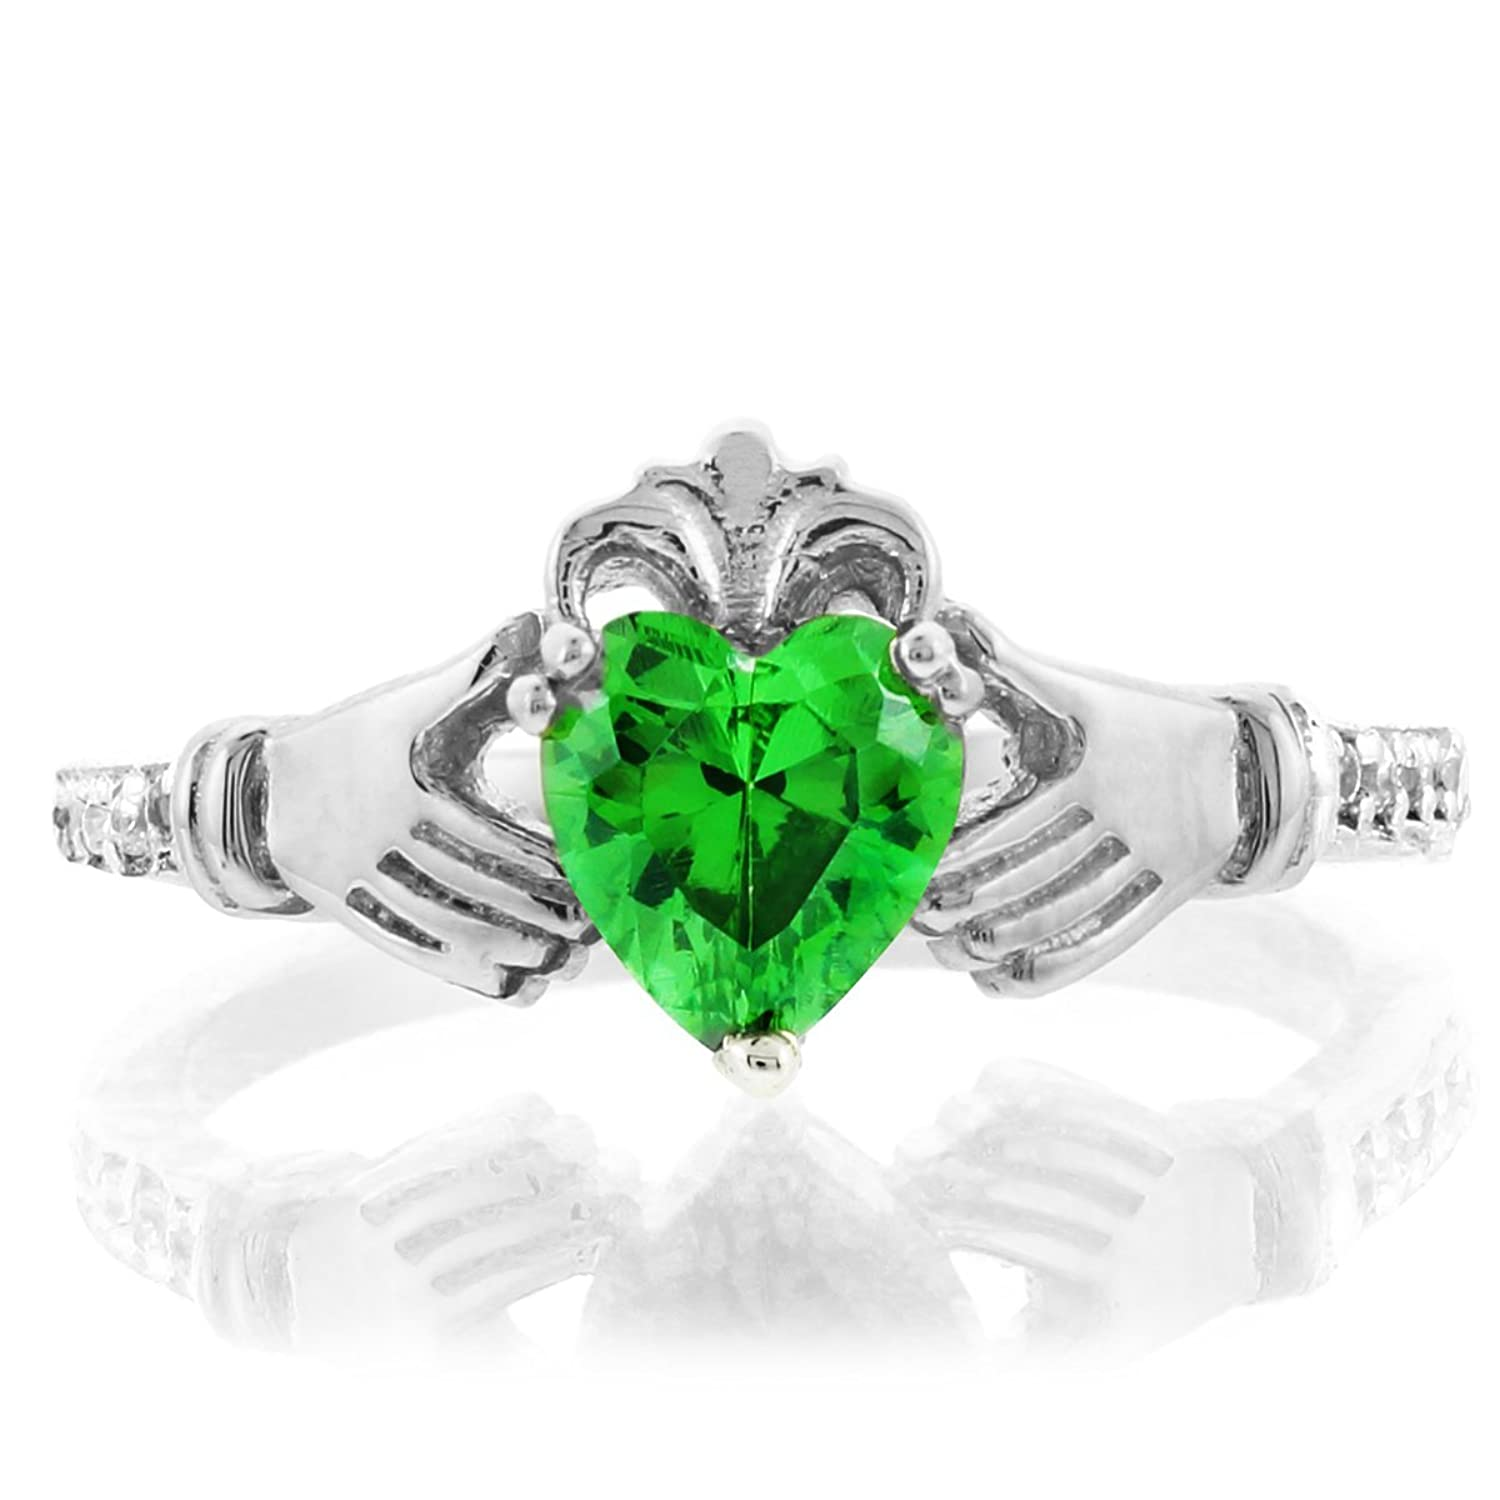 jewellery emerald ring rings number gold type jones ernest product smeralda costa stone le l webstore vian green strawberry